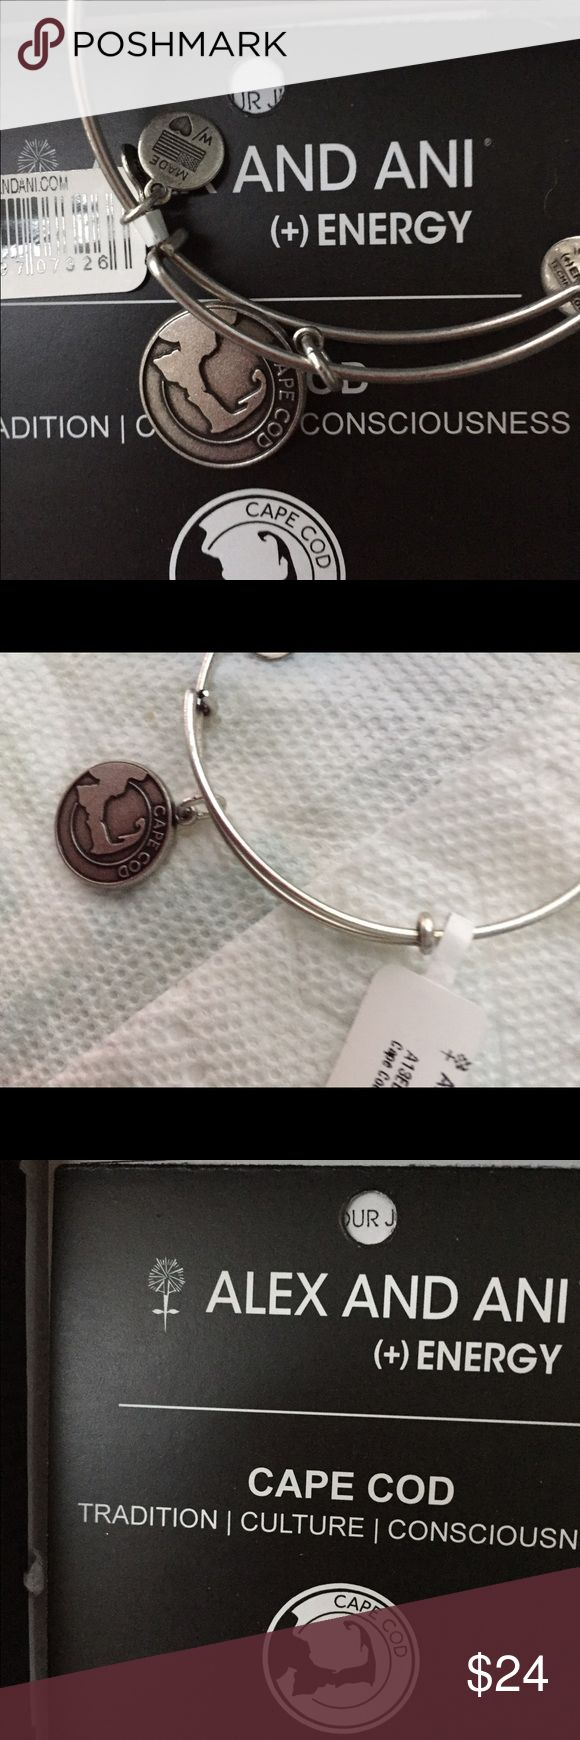 Alex And Ani Cape Cod Bracelet Brand New I Bought It For Someone Who  Already